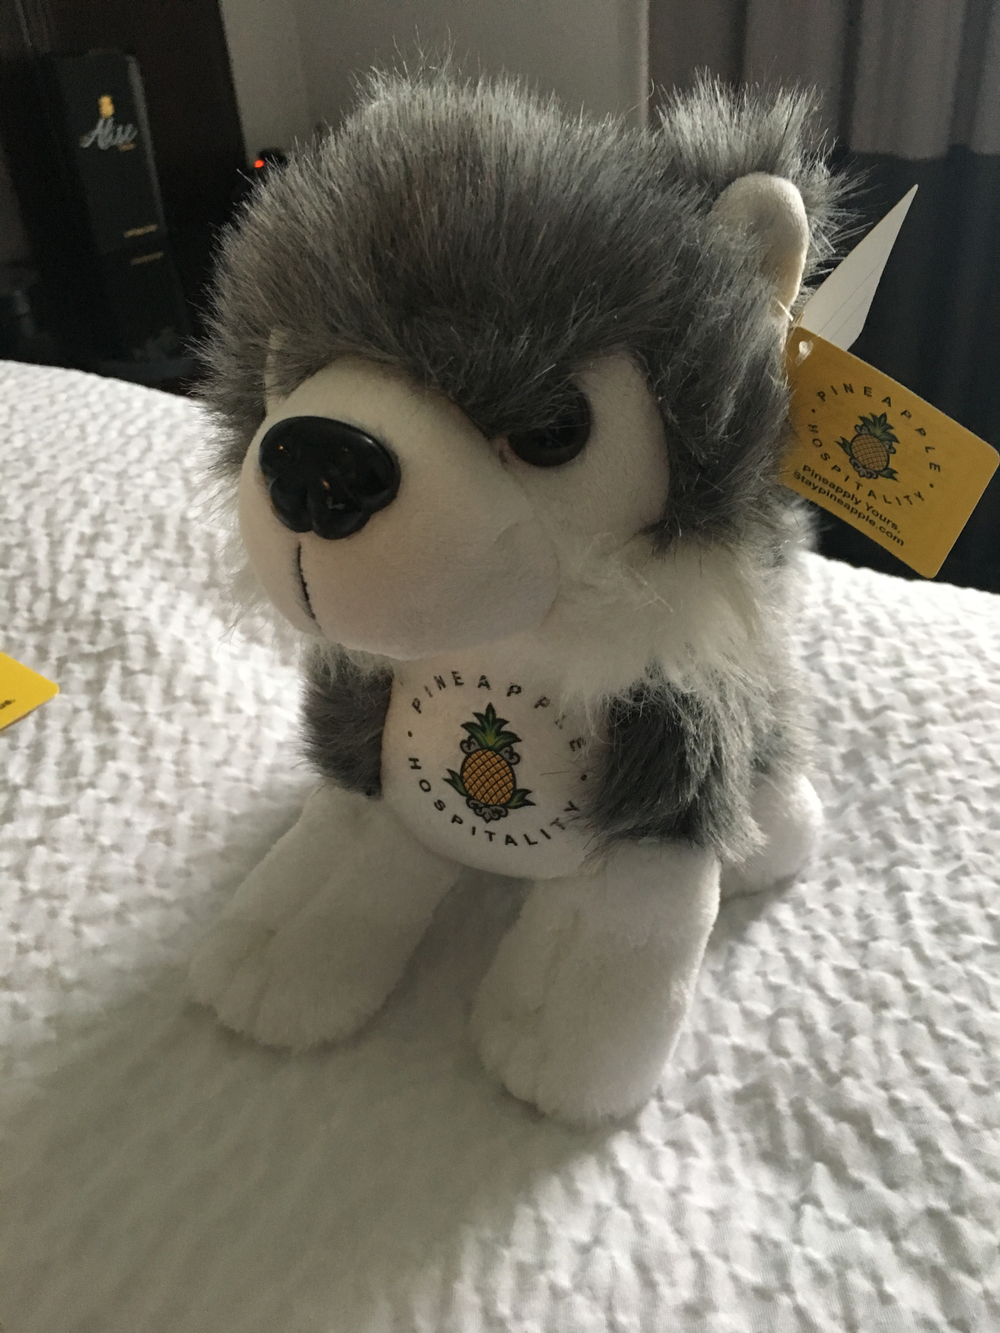 With a small donation to the Humane Society, the friendly huskey Dash is ready to go home with you.